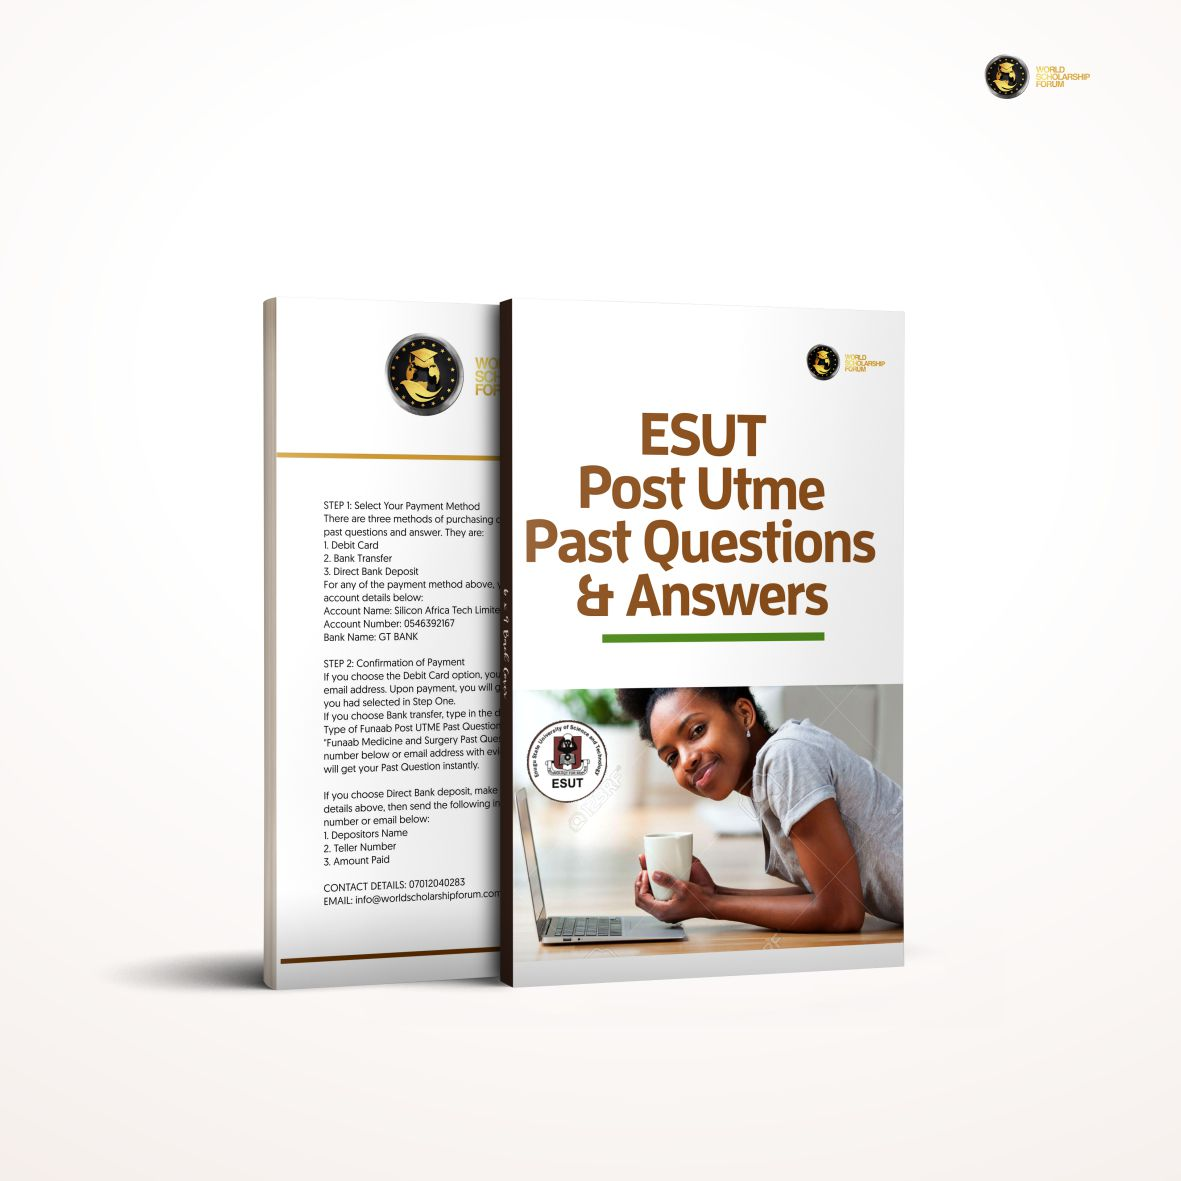 ESUT-POST-UTME-PAST-QUESTIONS-ANSWERS